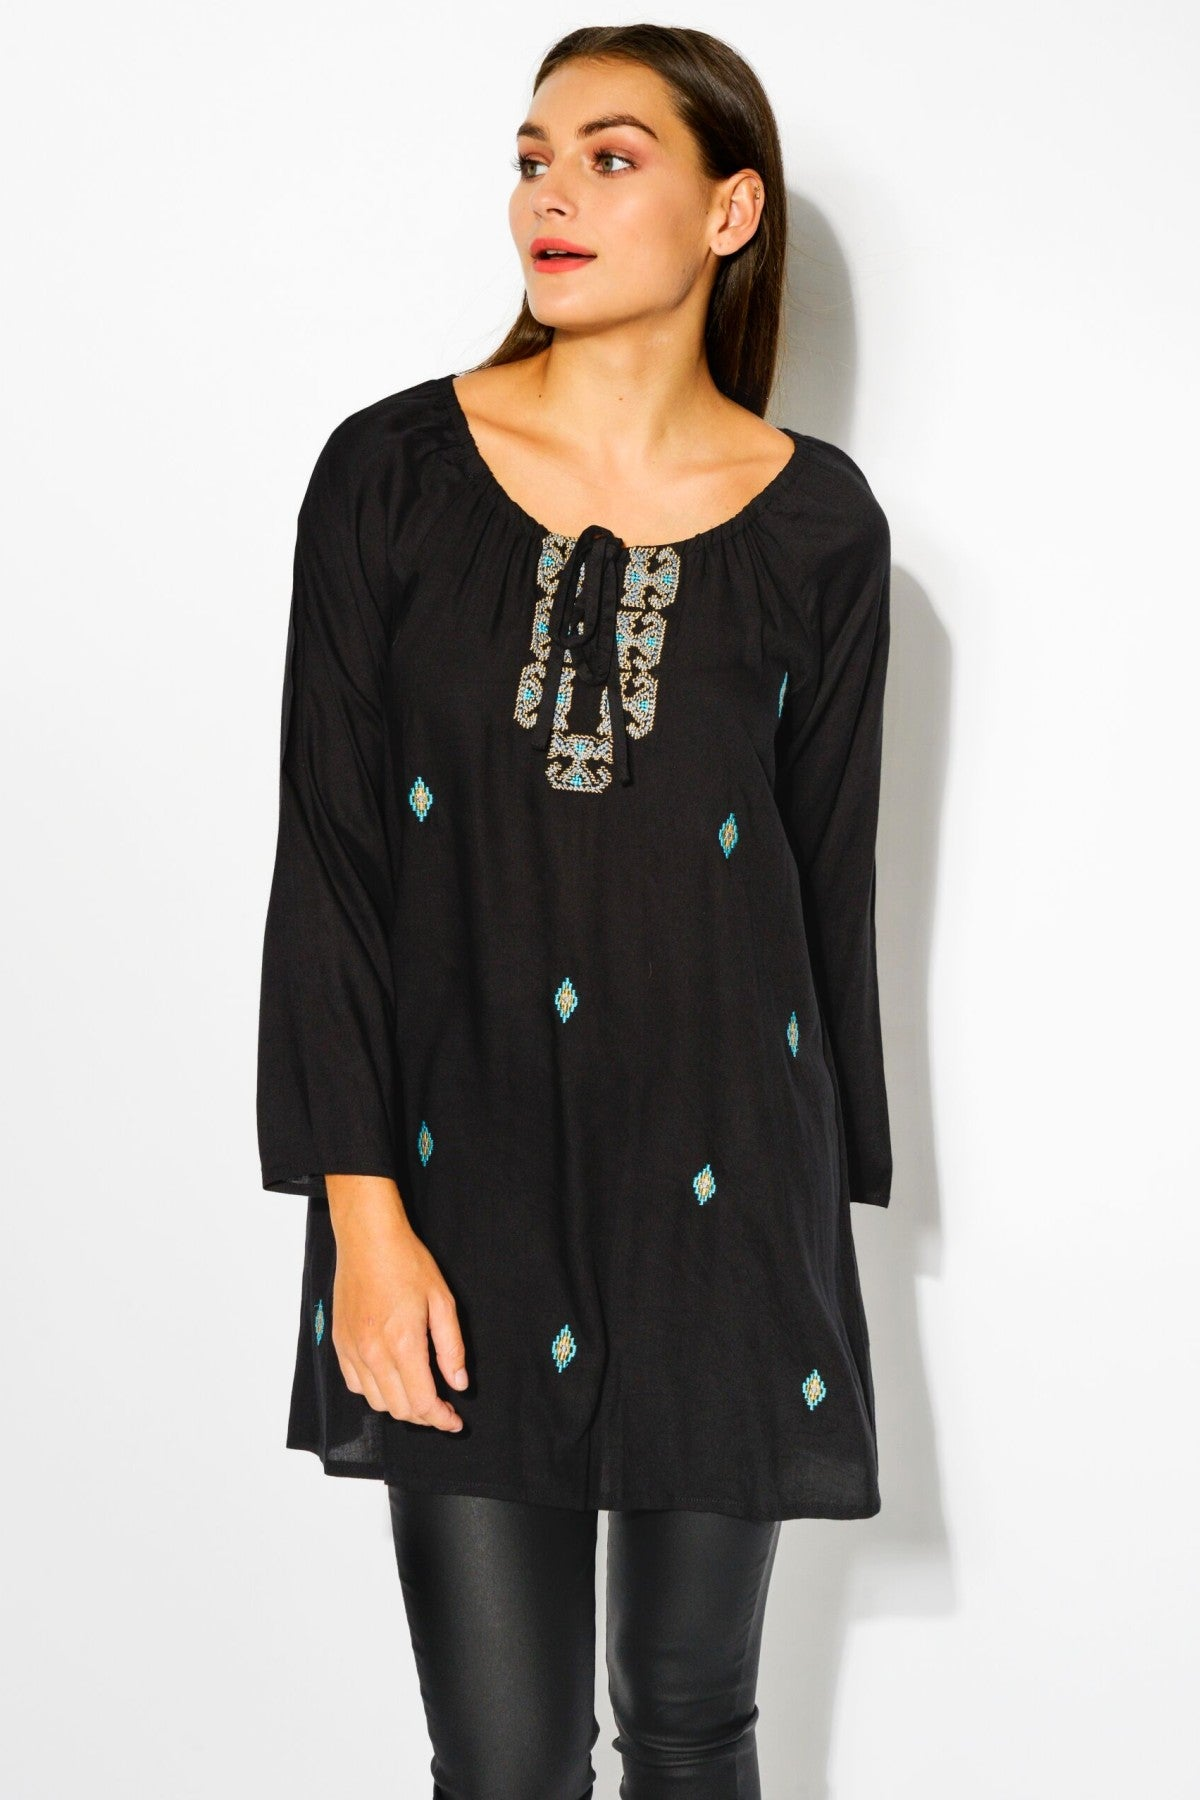 Black Madelyn Tunic Top | I Love Tunics | Tunic Tops | Tunic Dresses | Women's Tops | Plus Size Australia | Mature Fashion